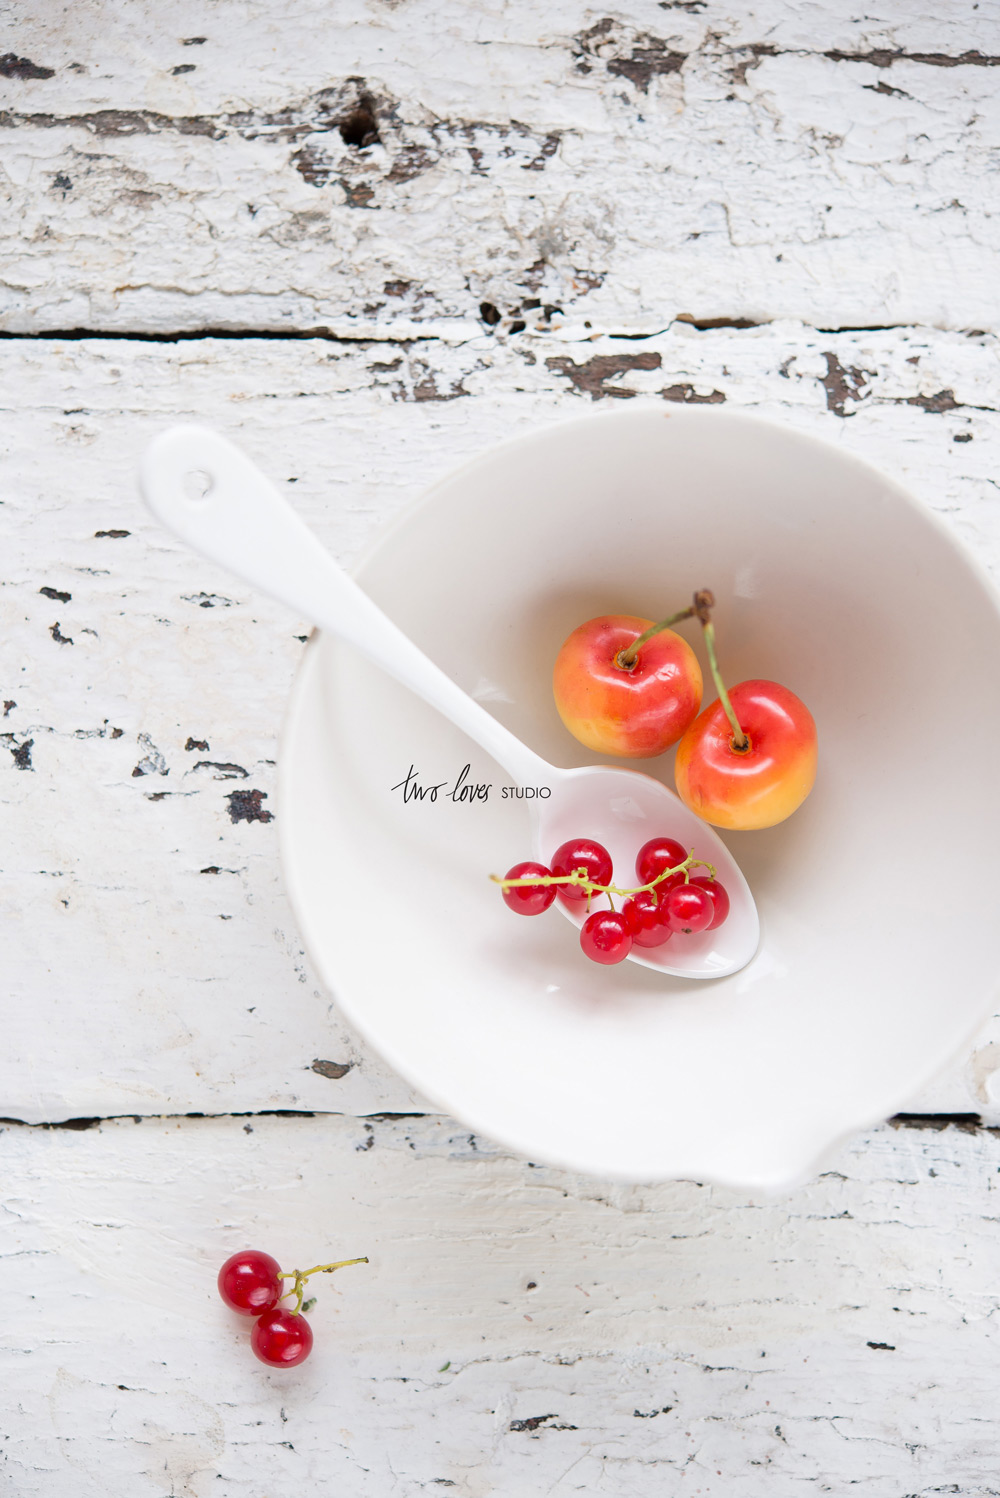 Two Loves Studio Red Currant Consomme